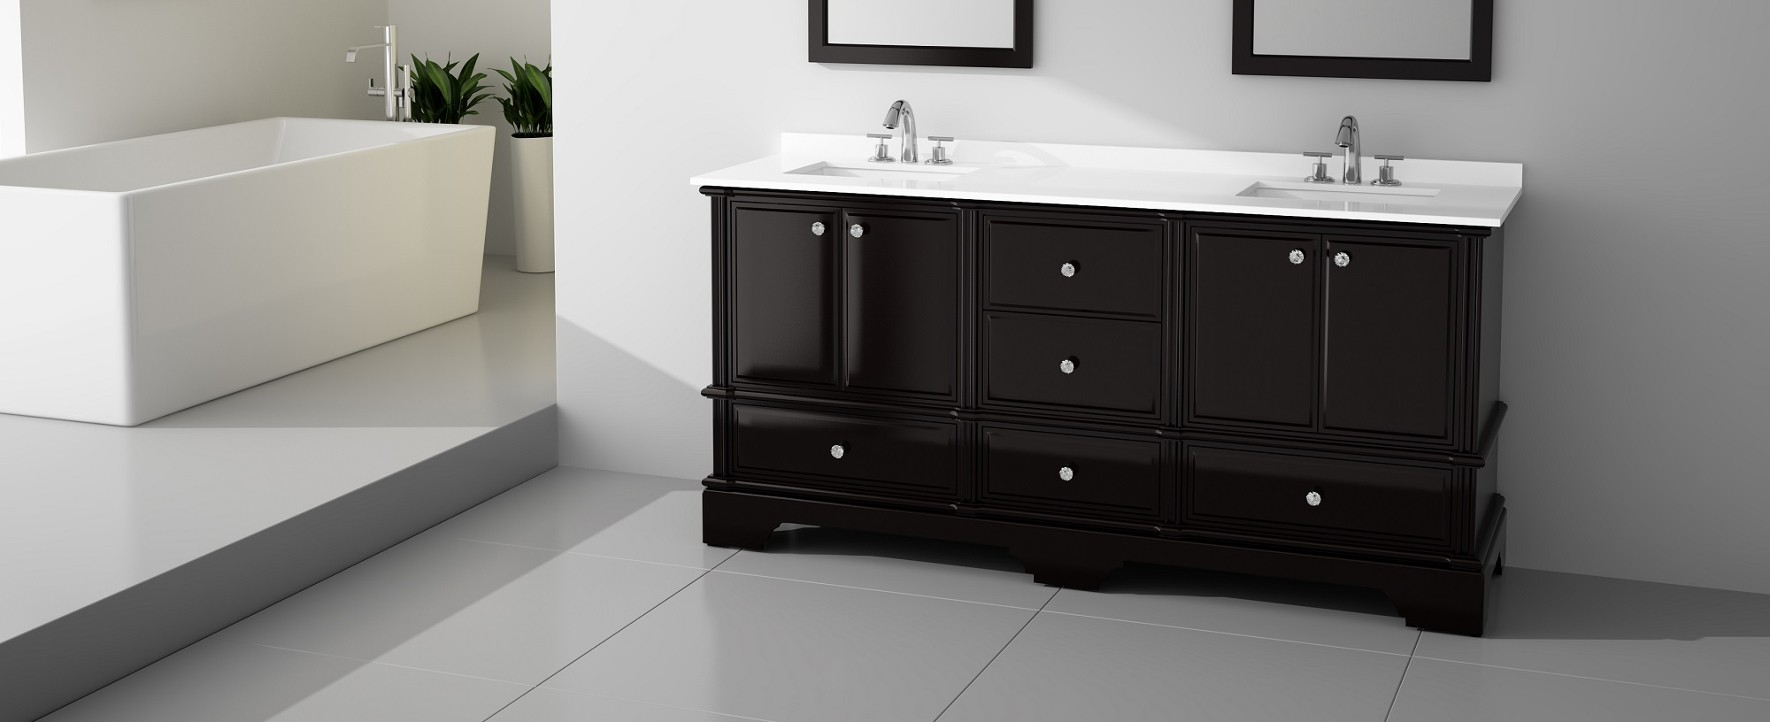 Elegant Bathroom Vanity Designs